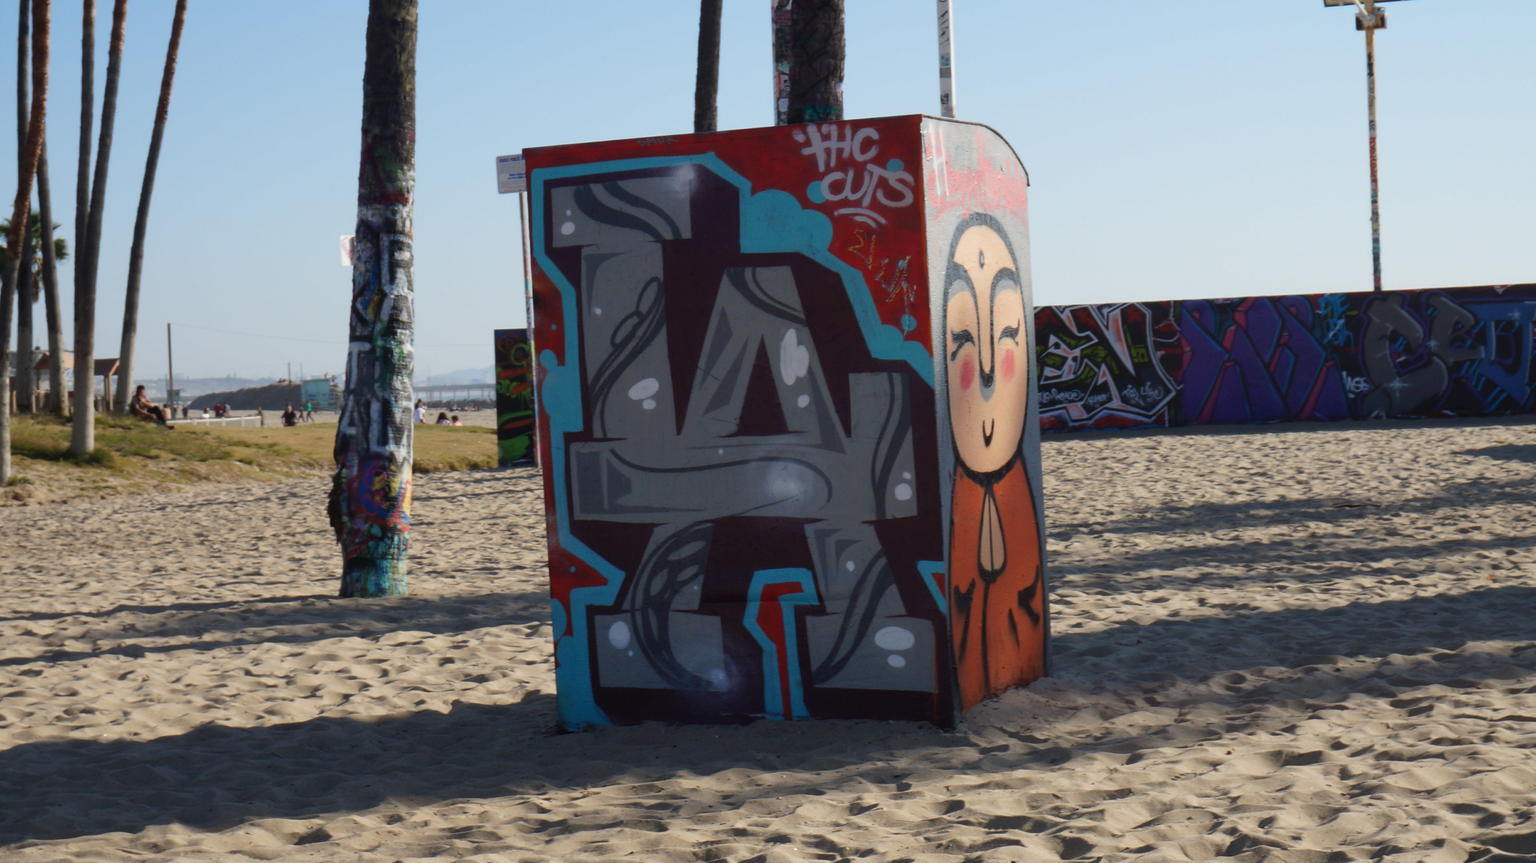 City Tour of Los Angeles from Long Beach and San Pedro